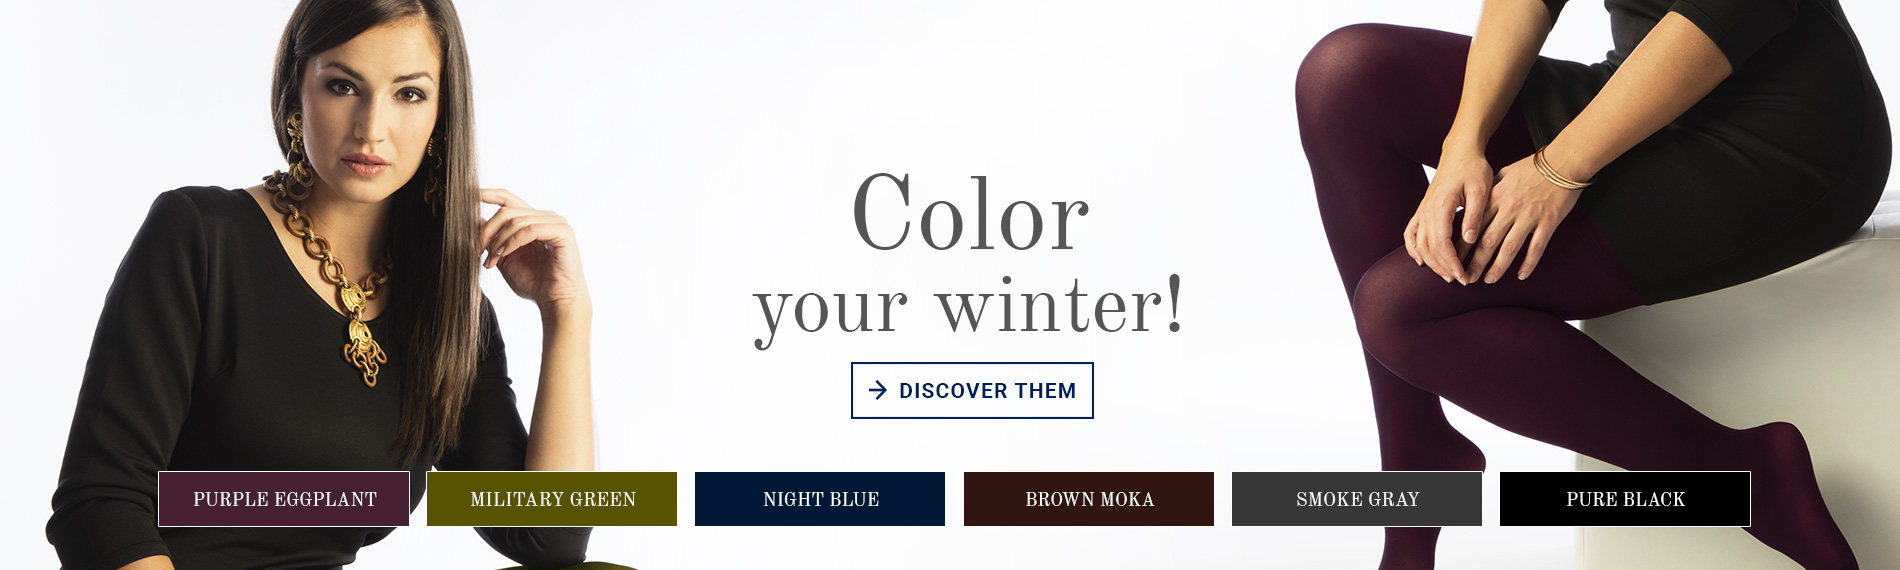 Color your winter